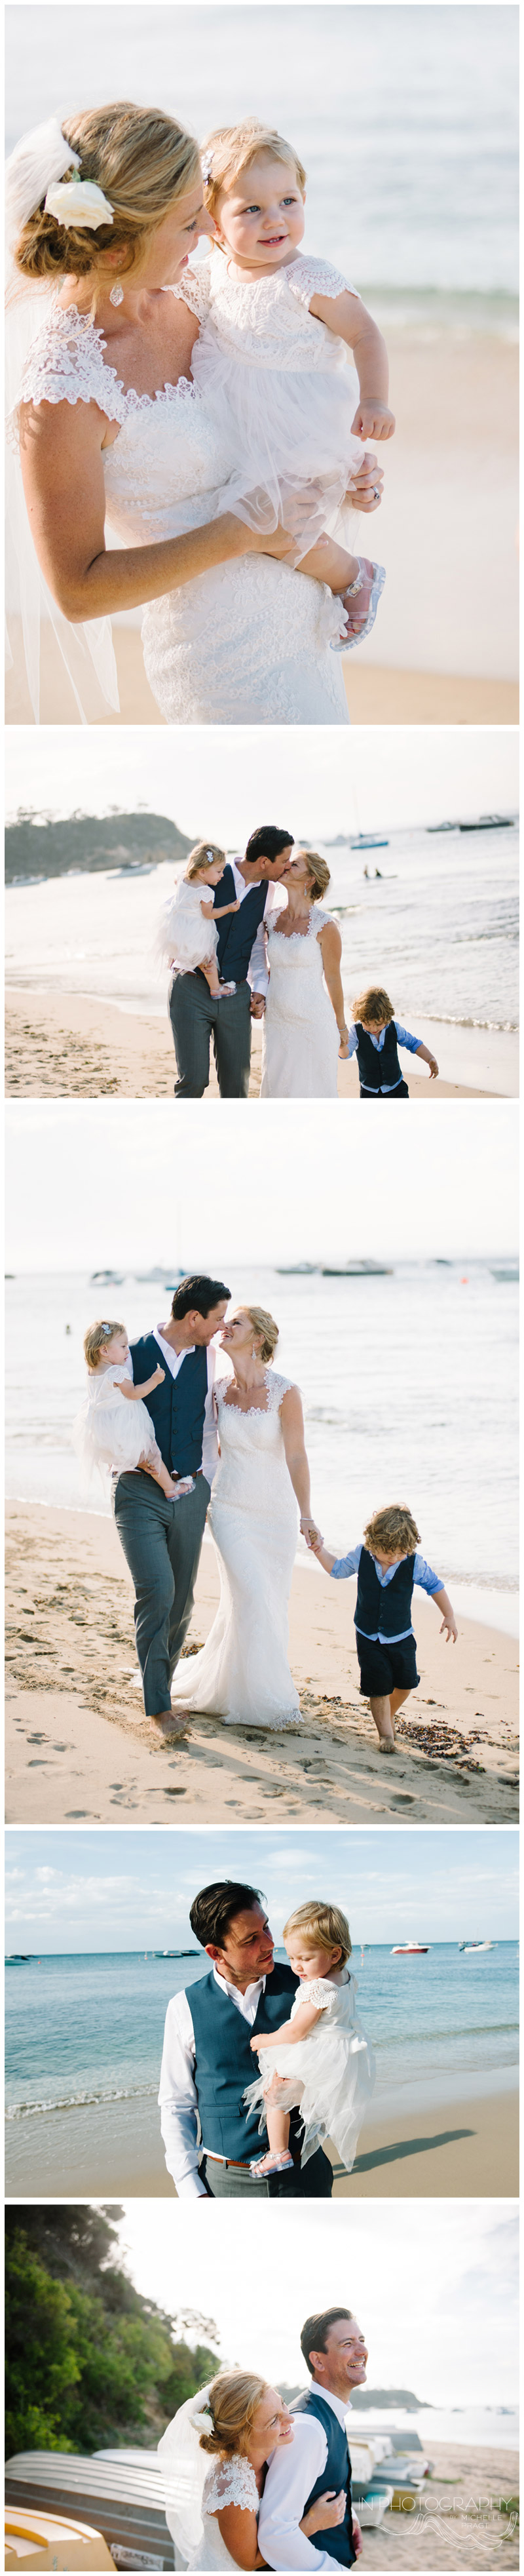 Happy bride and groom with kids on Mornington Peninsula beach